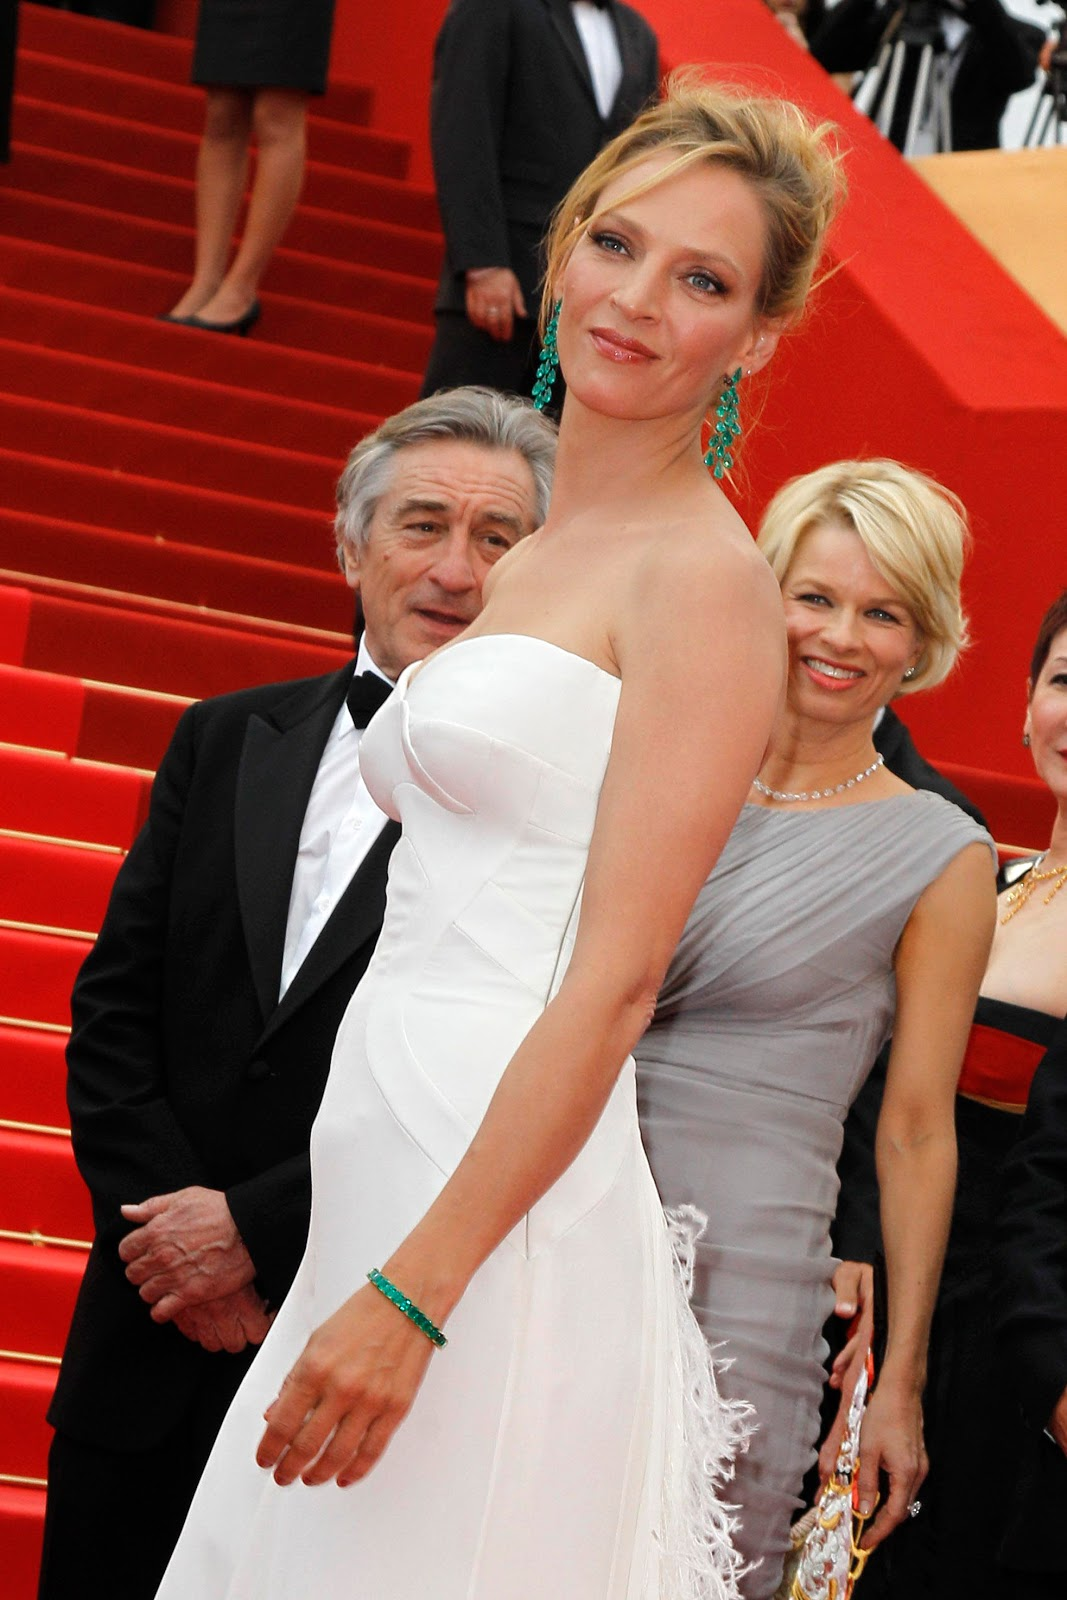 http://1.bp.blogspot.com/-VOlpuKNRwL4/TcvBd6A1rBI/AAAAAAAANmg/W0NHAQkL_7c/s1600/Uma+Thurman+with+Chopard+Jewels03.JPG